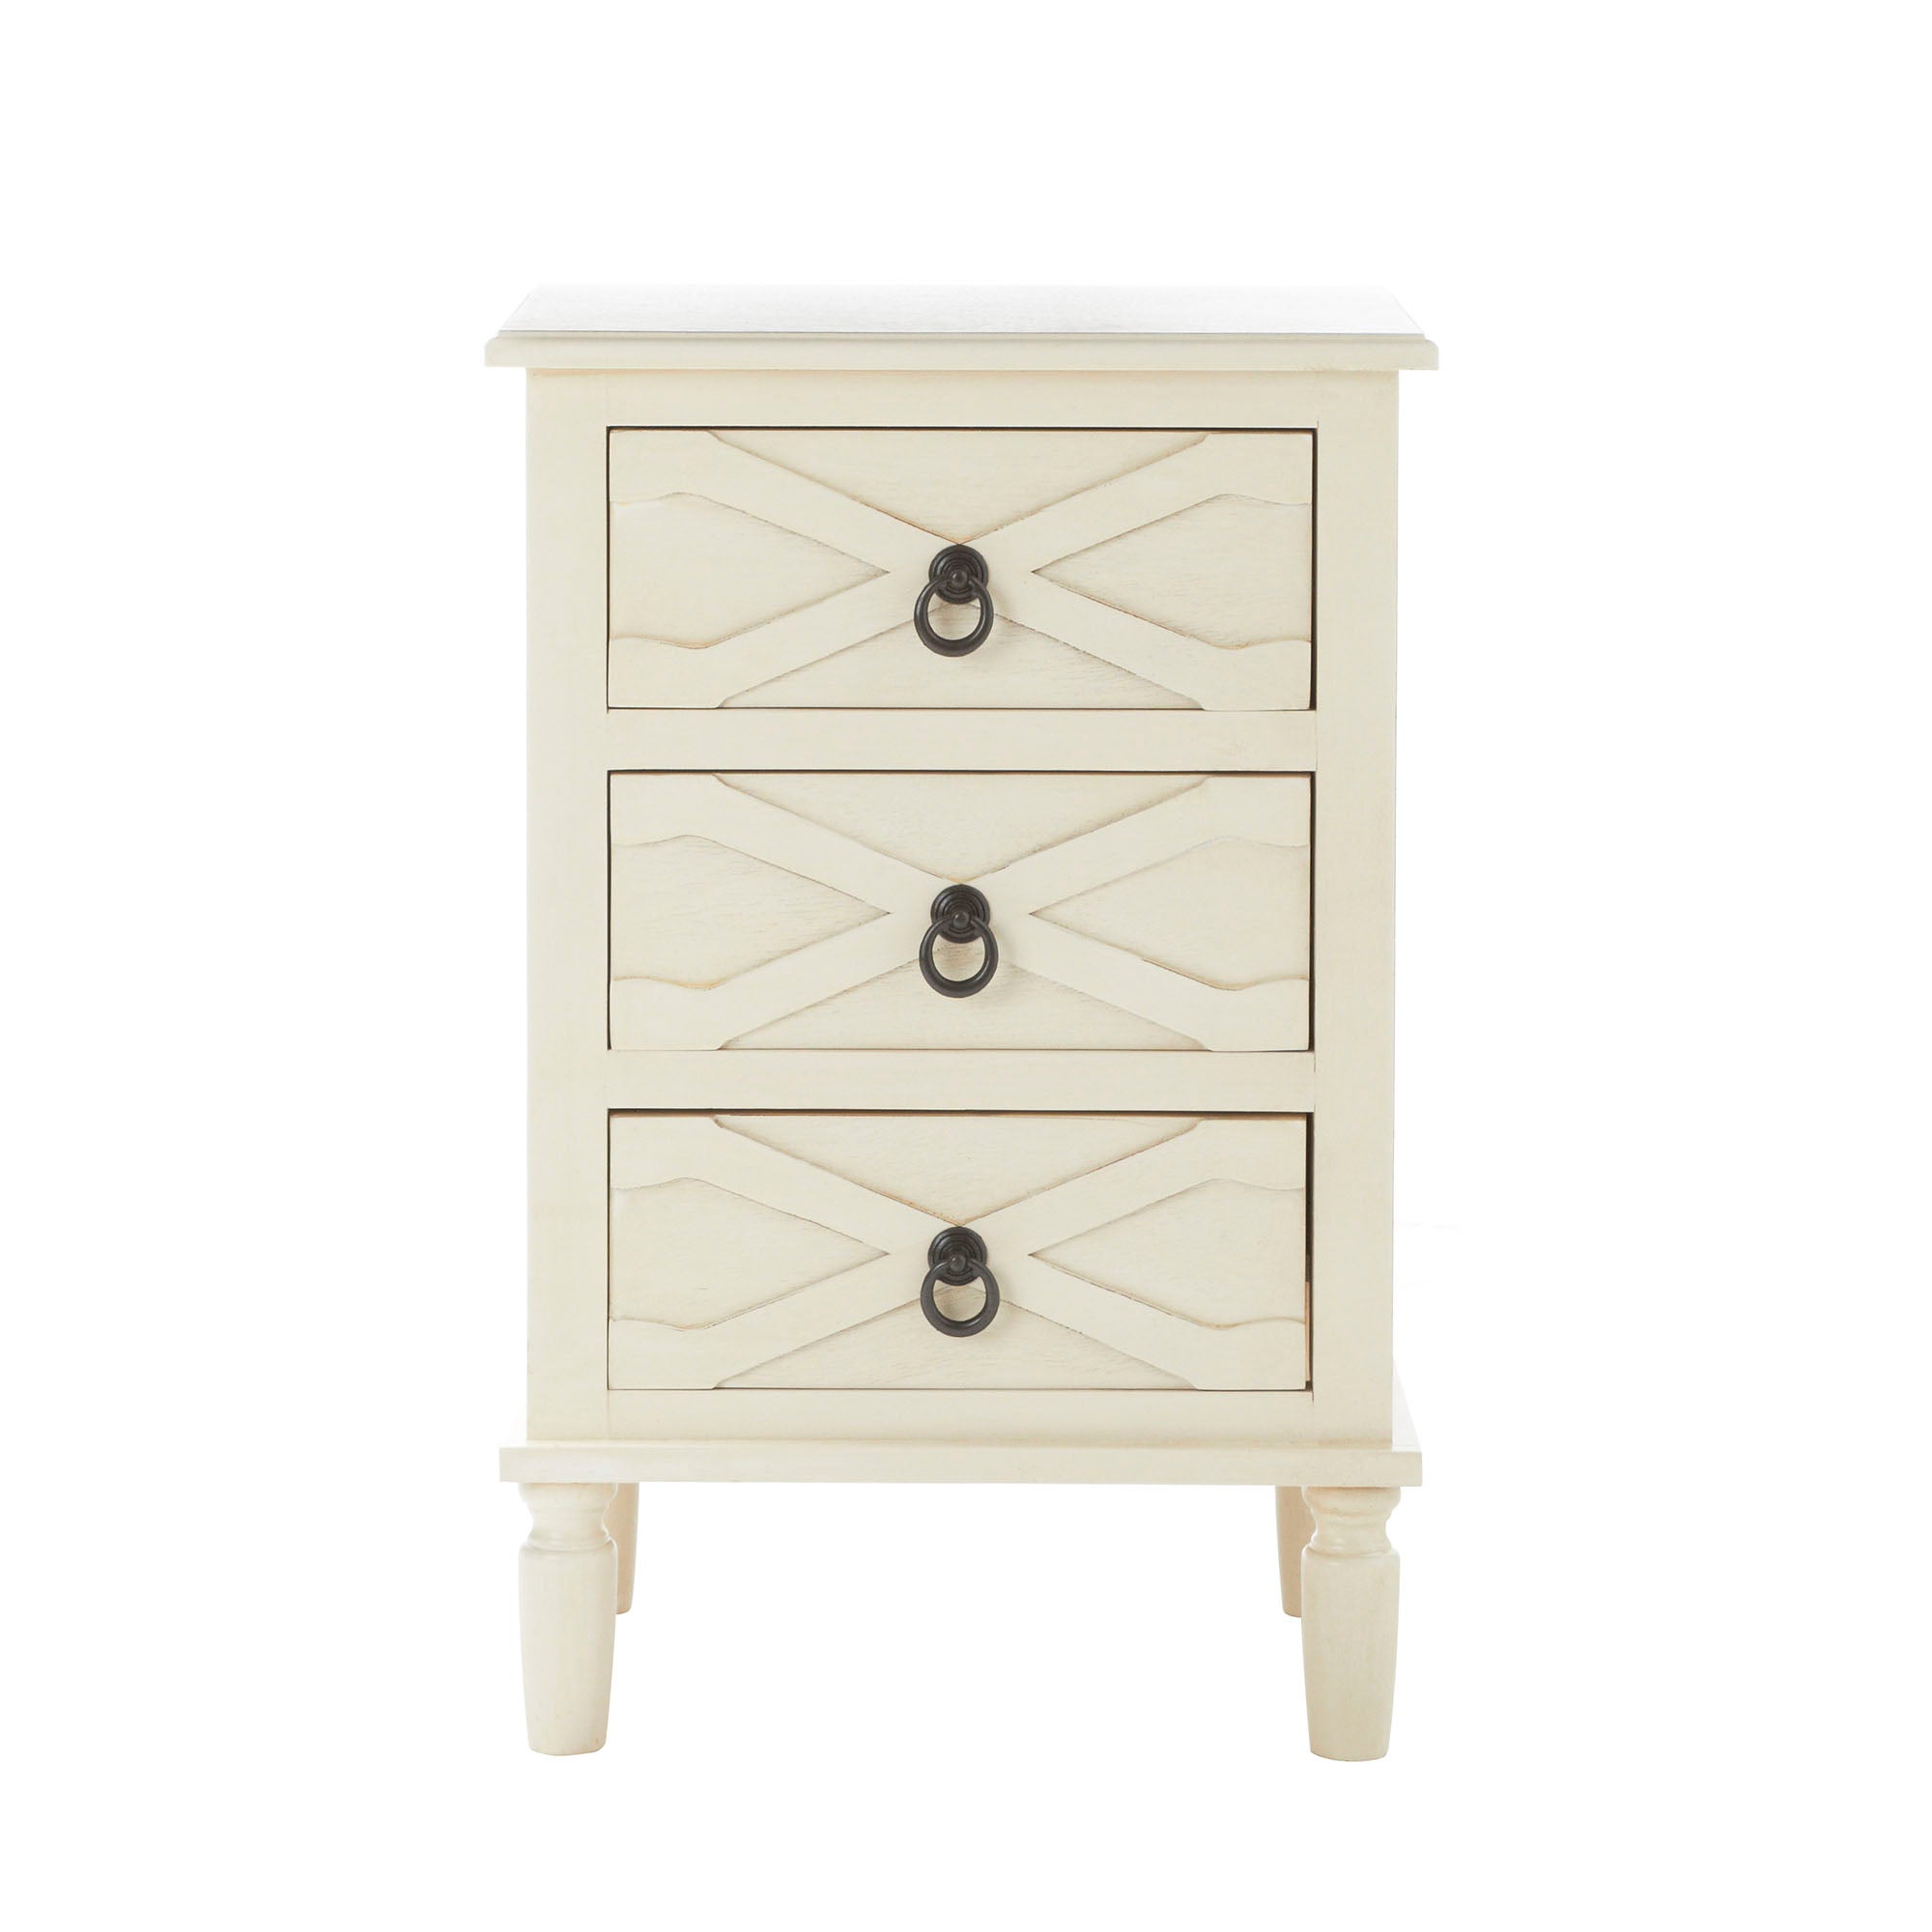 Pennsylvania Cream 3 Drawer Bedside Table